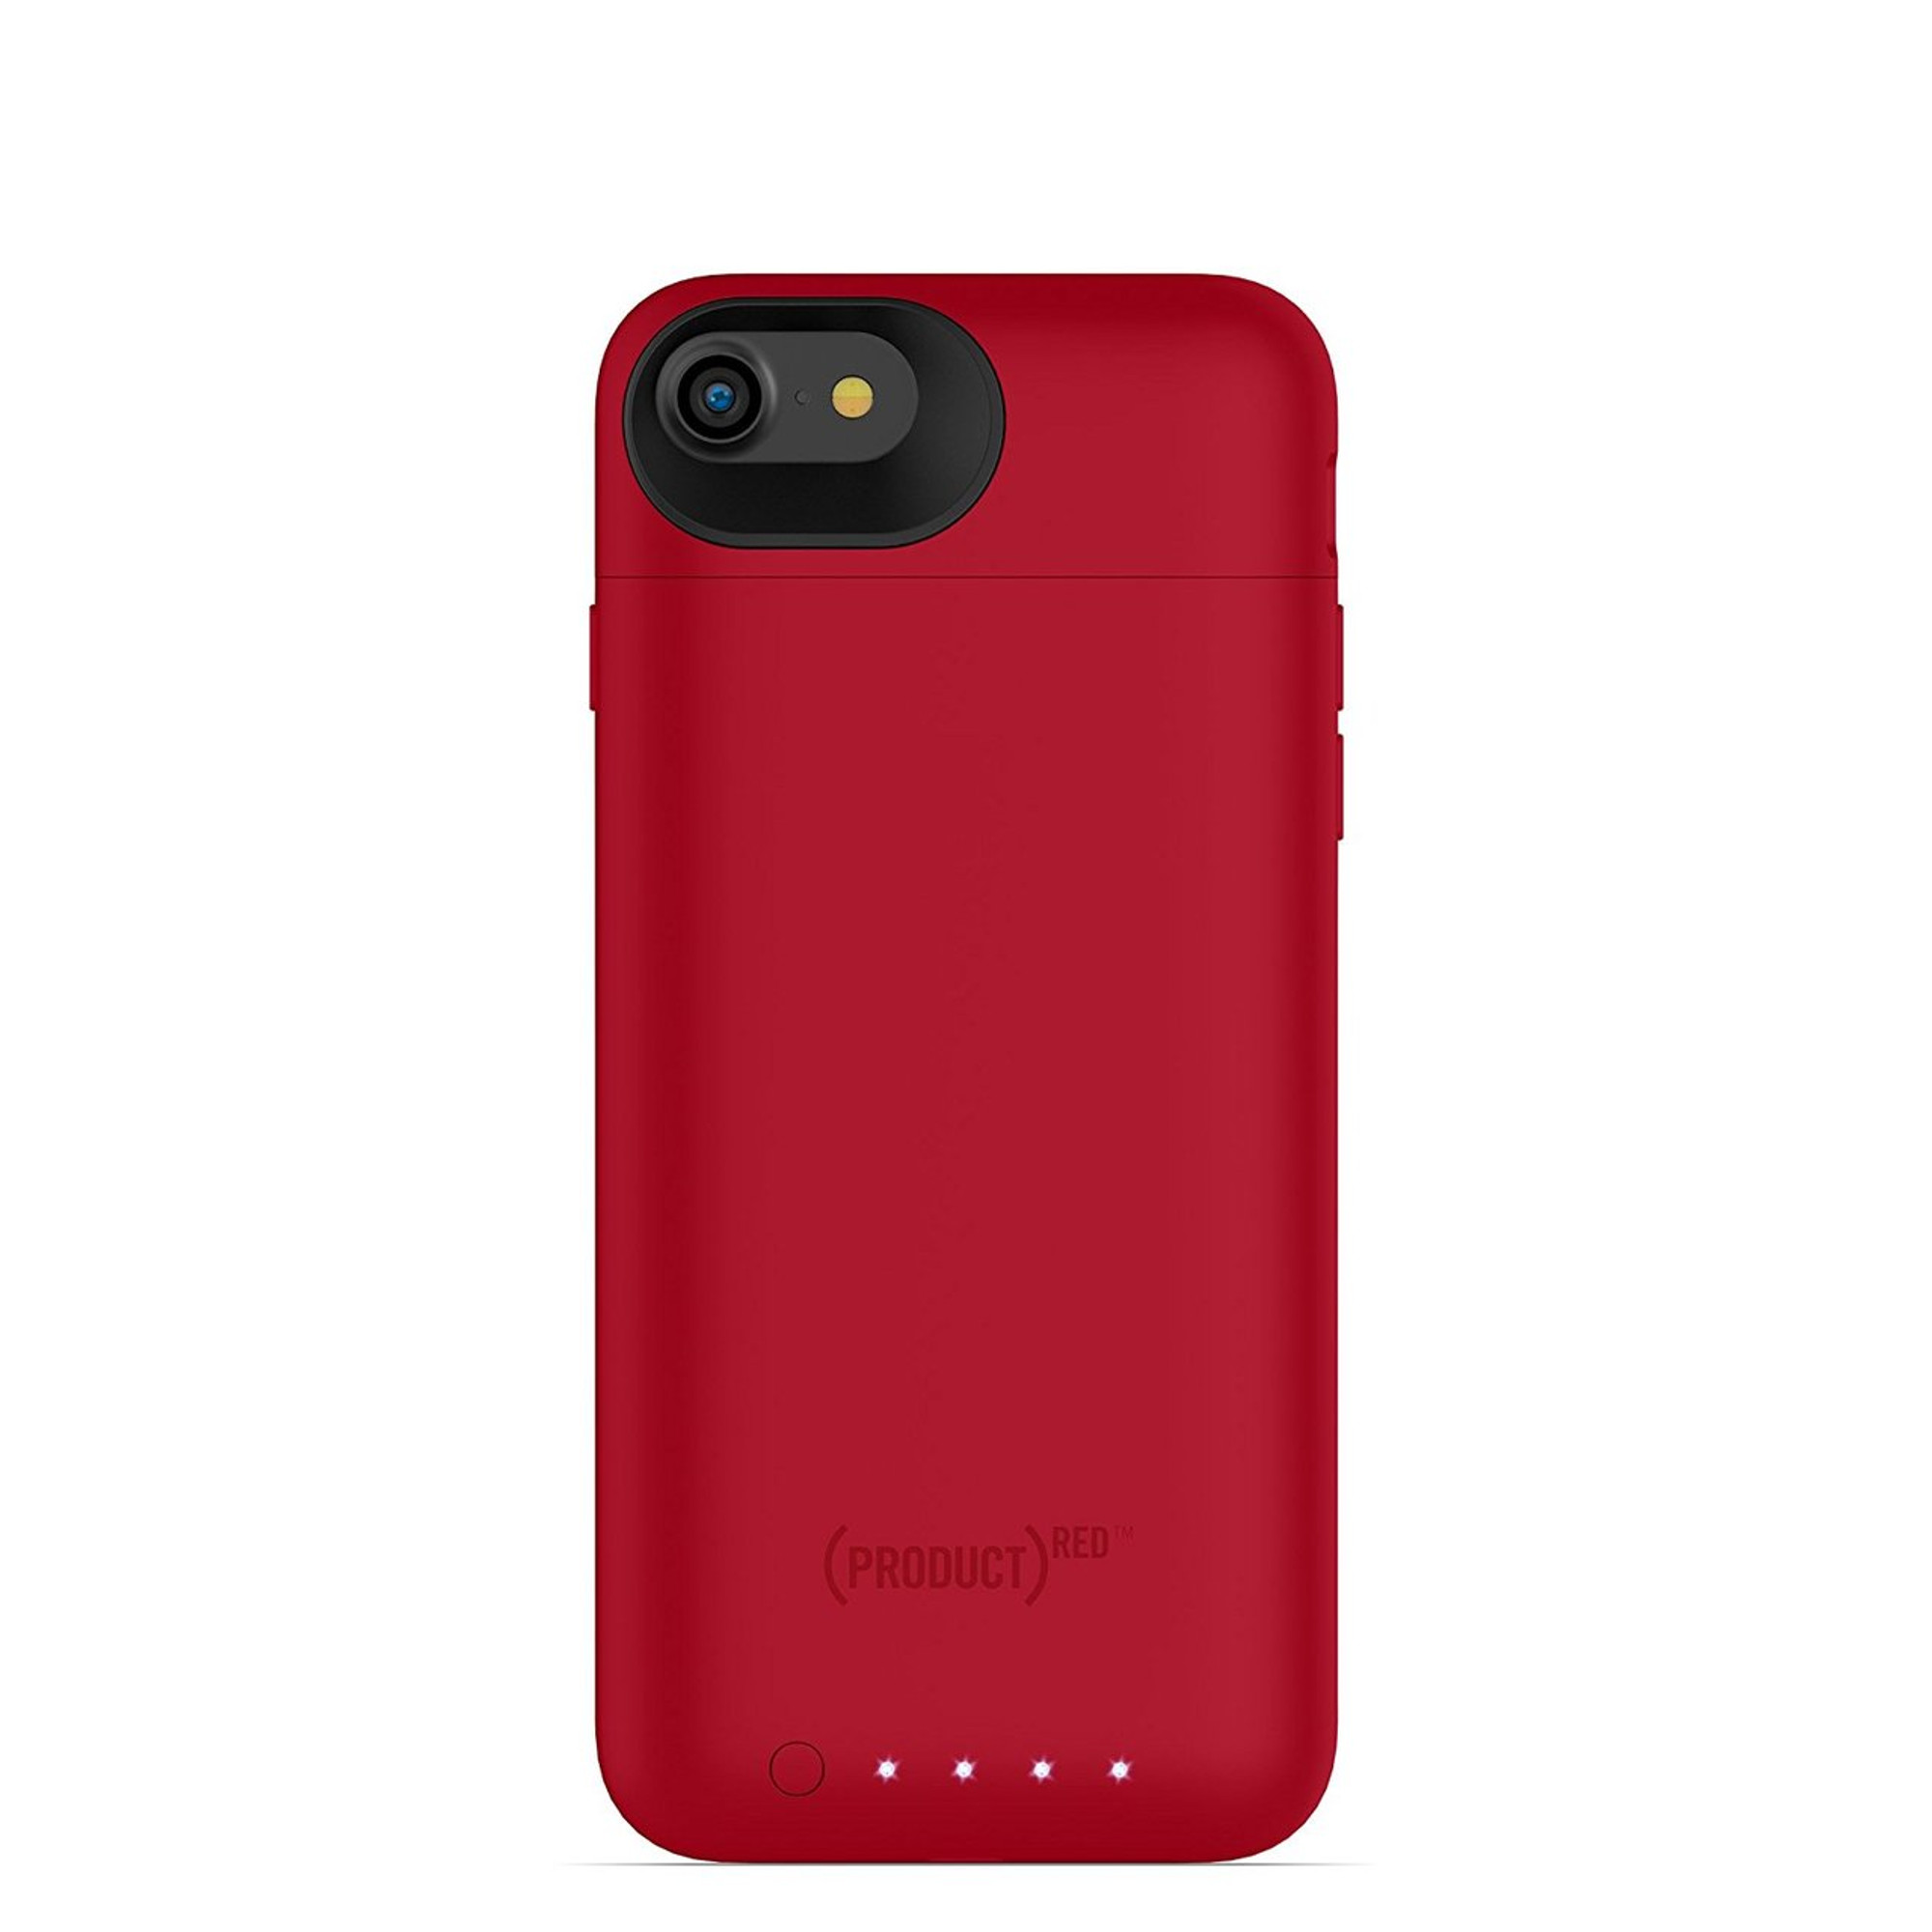 size 40 2608d d4bee mophie juice pack air for iPhone 7 Plus - Red